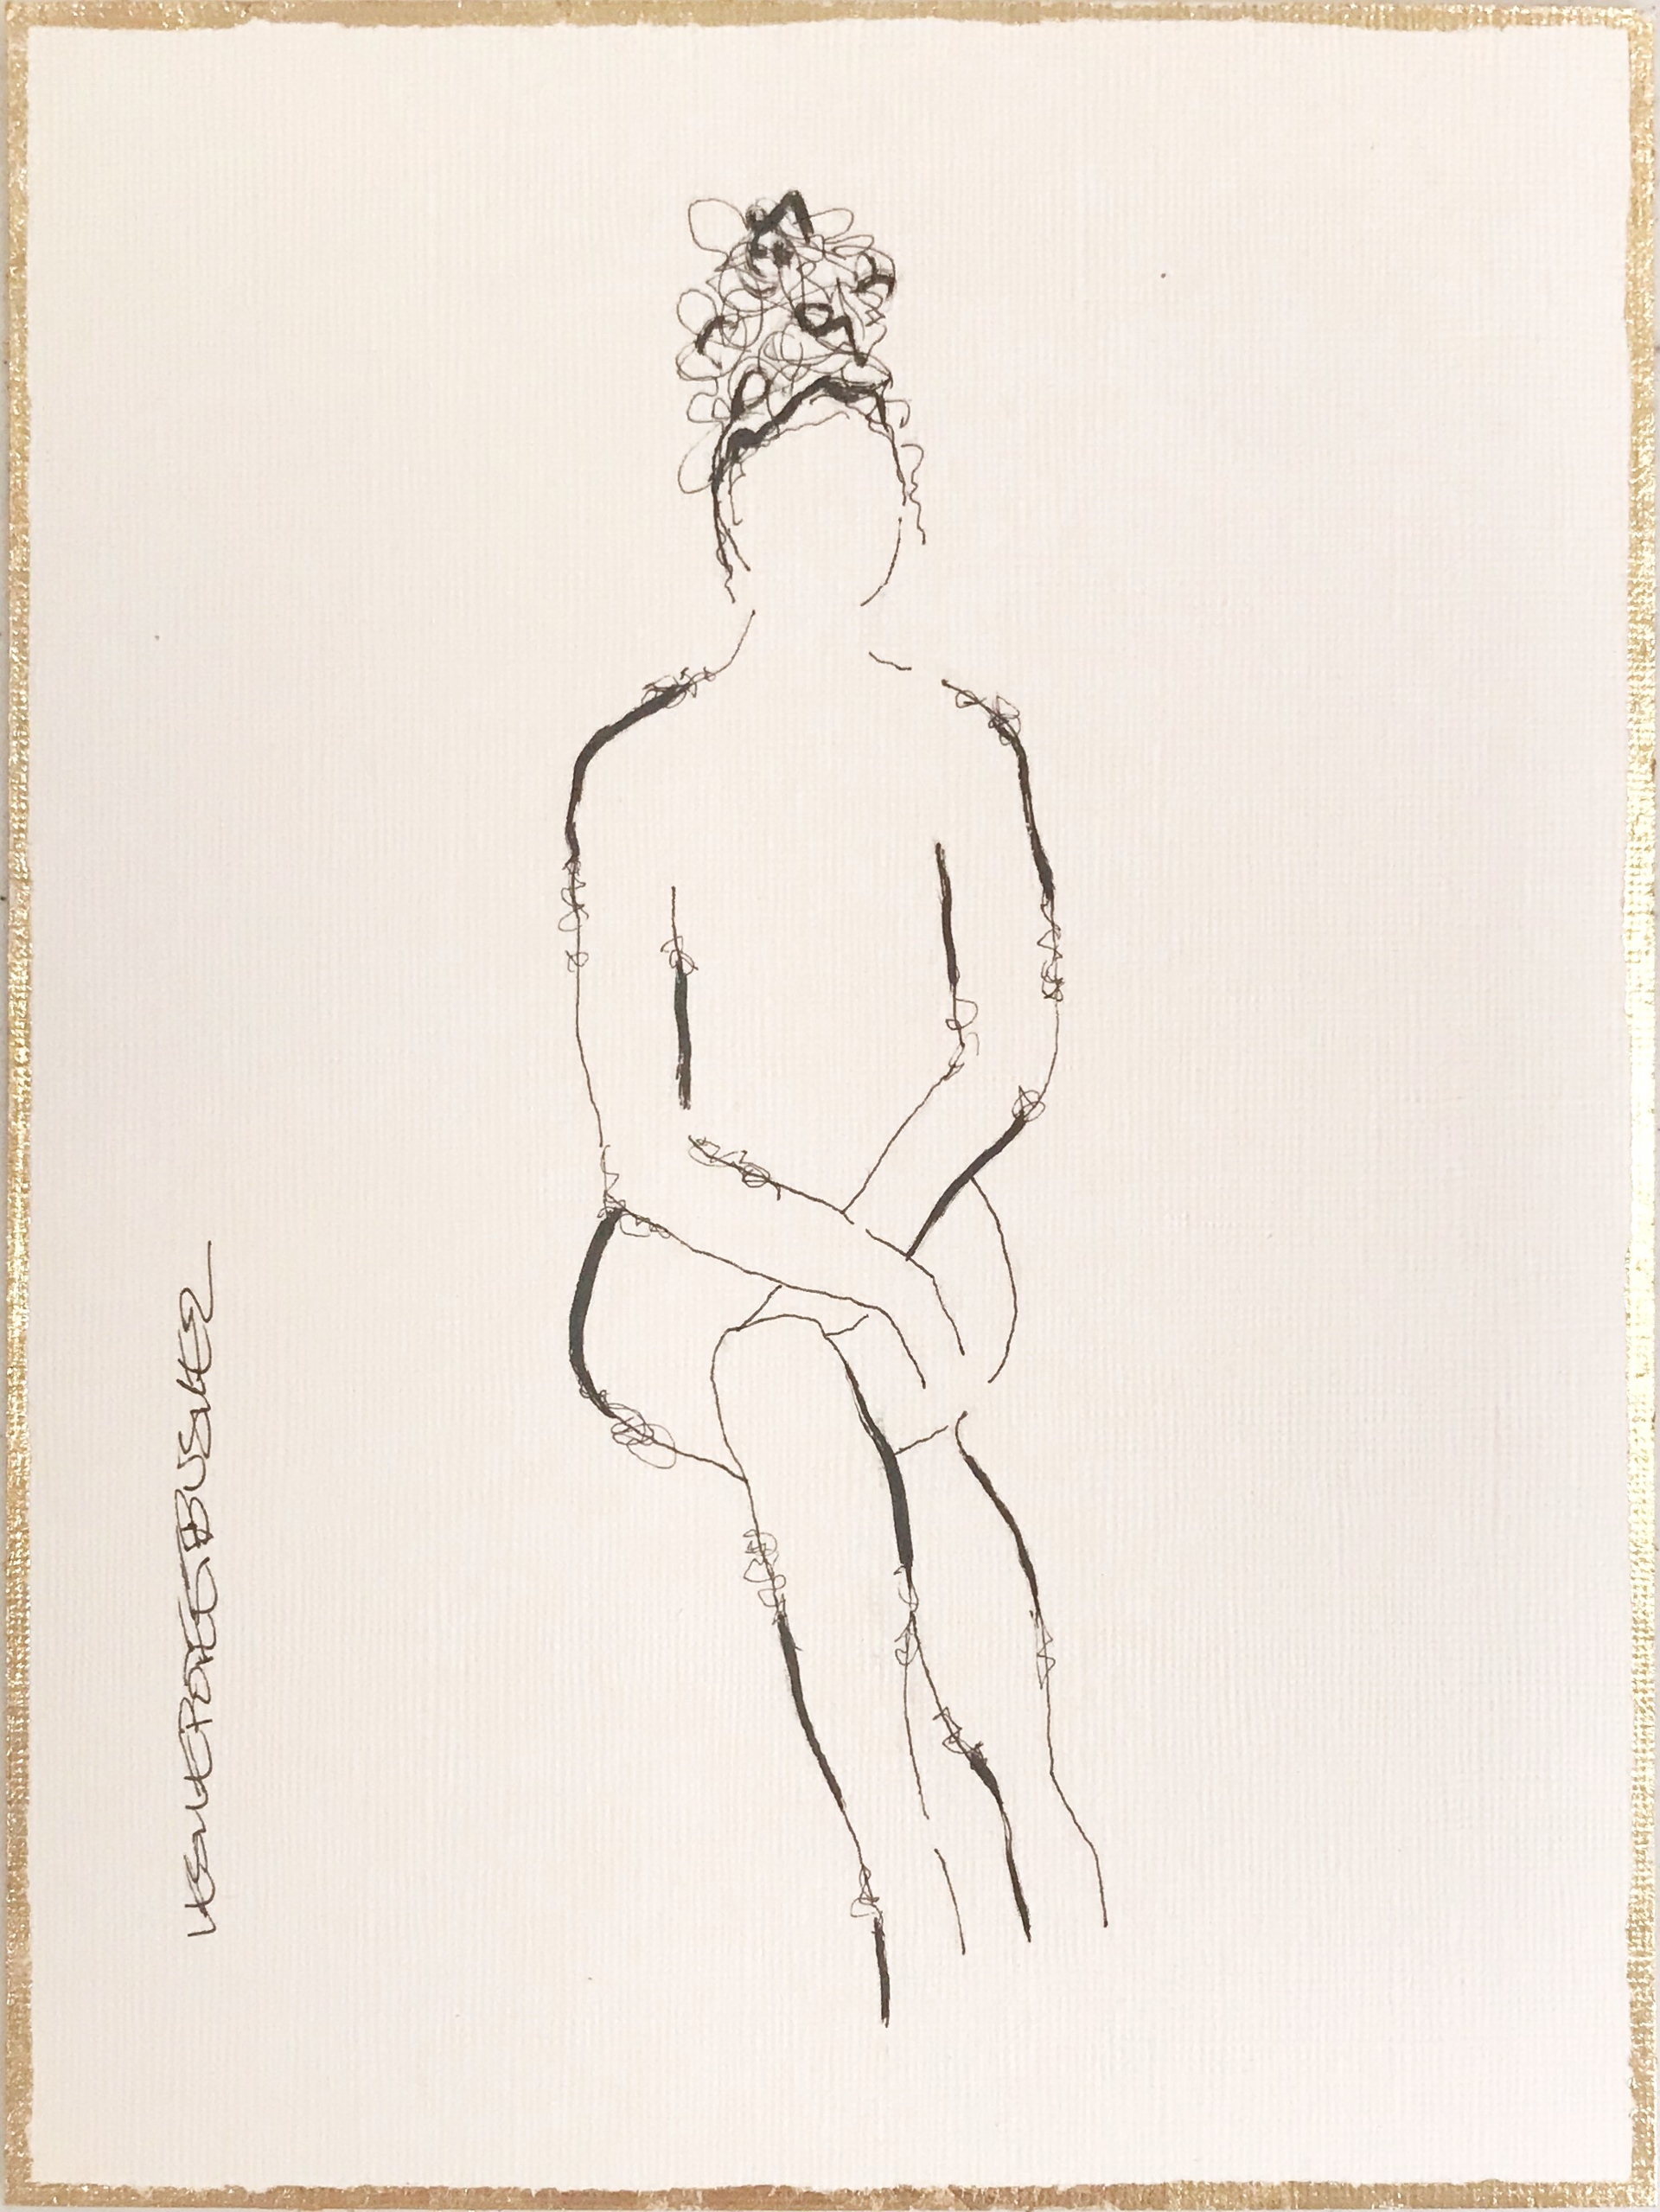 Figure No. 184 by Leslie Poteet Busker